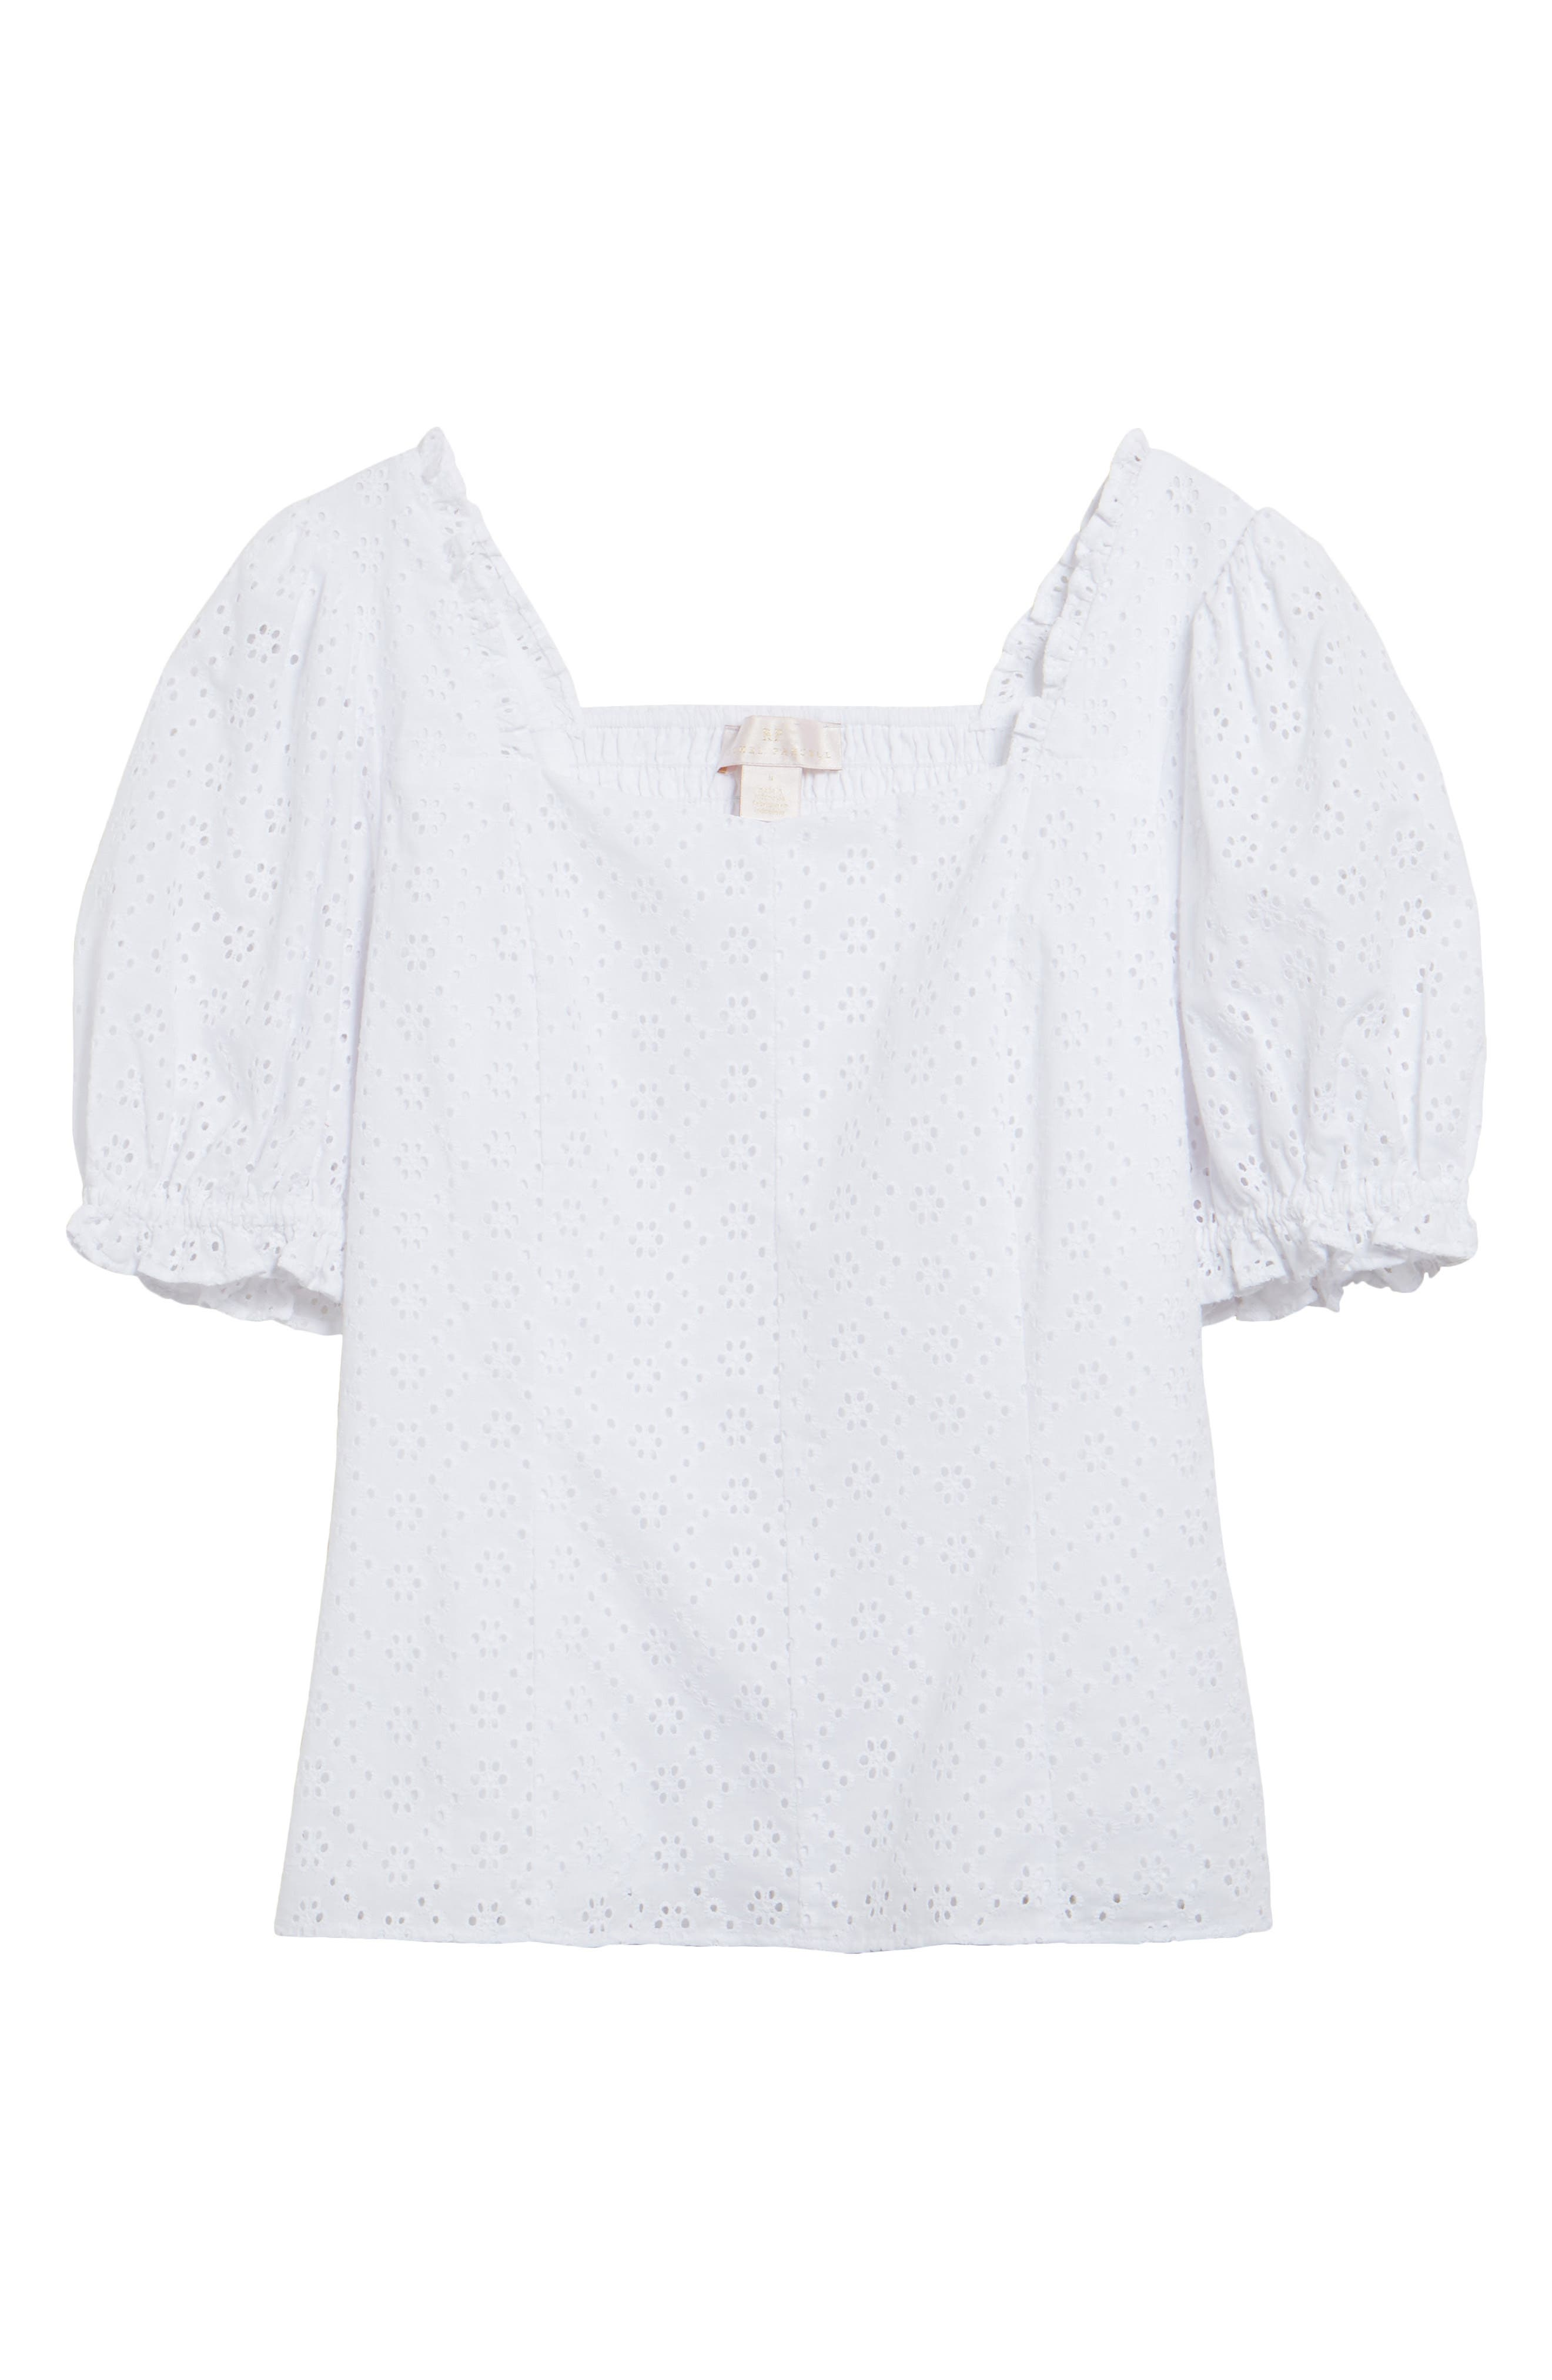 1940s Blouses and Tops Womens Rachel Parcell Puff Sleeve Eyelet Top Size X-Large - White $89.00 AT vintagedancer.com